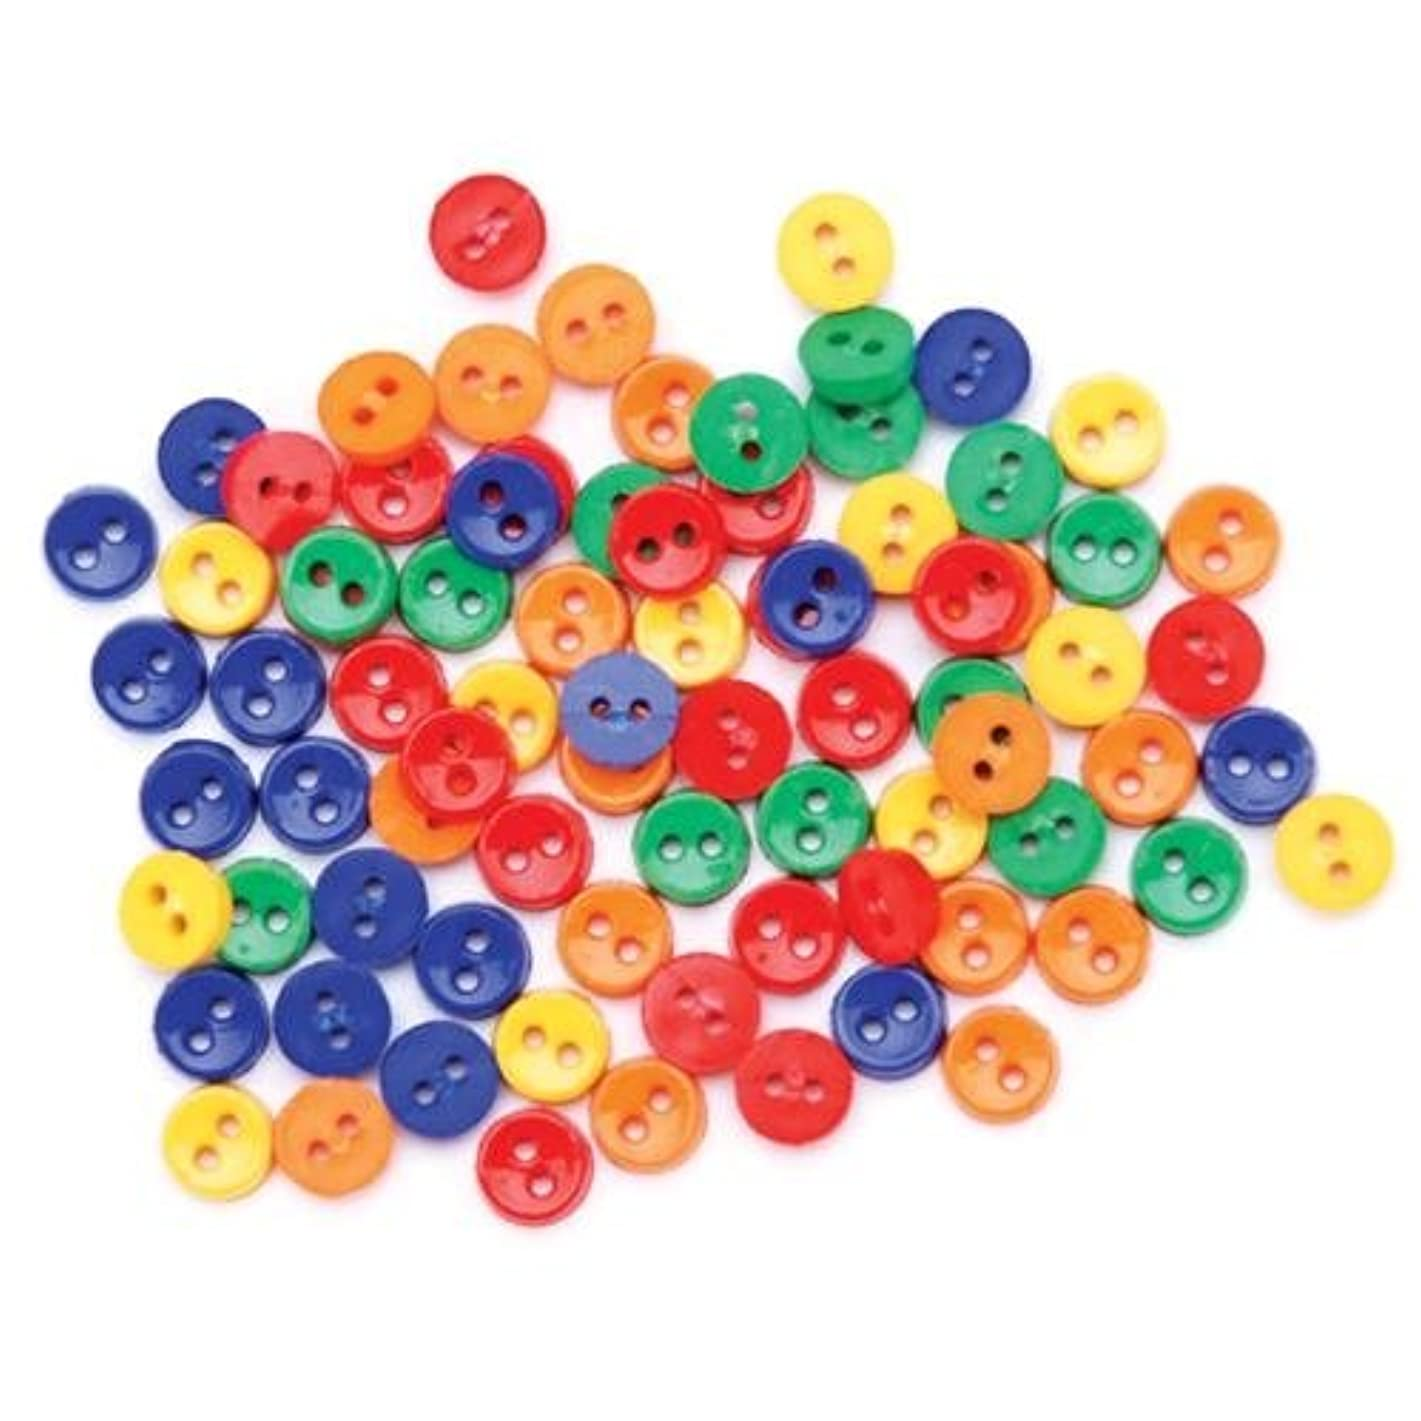 Blumenthal Lansing Favorite Findings Basic Mini Buttons, 75/Pkg, Primary